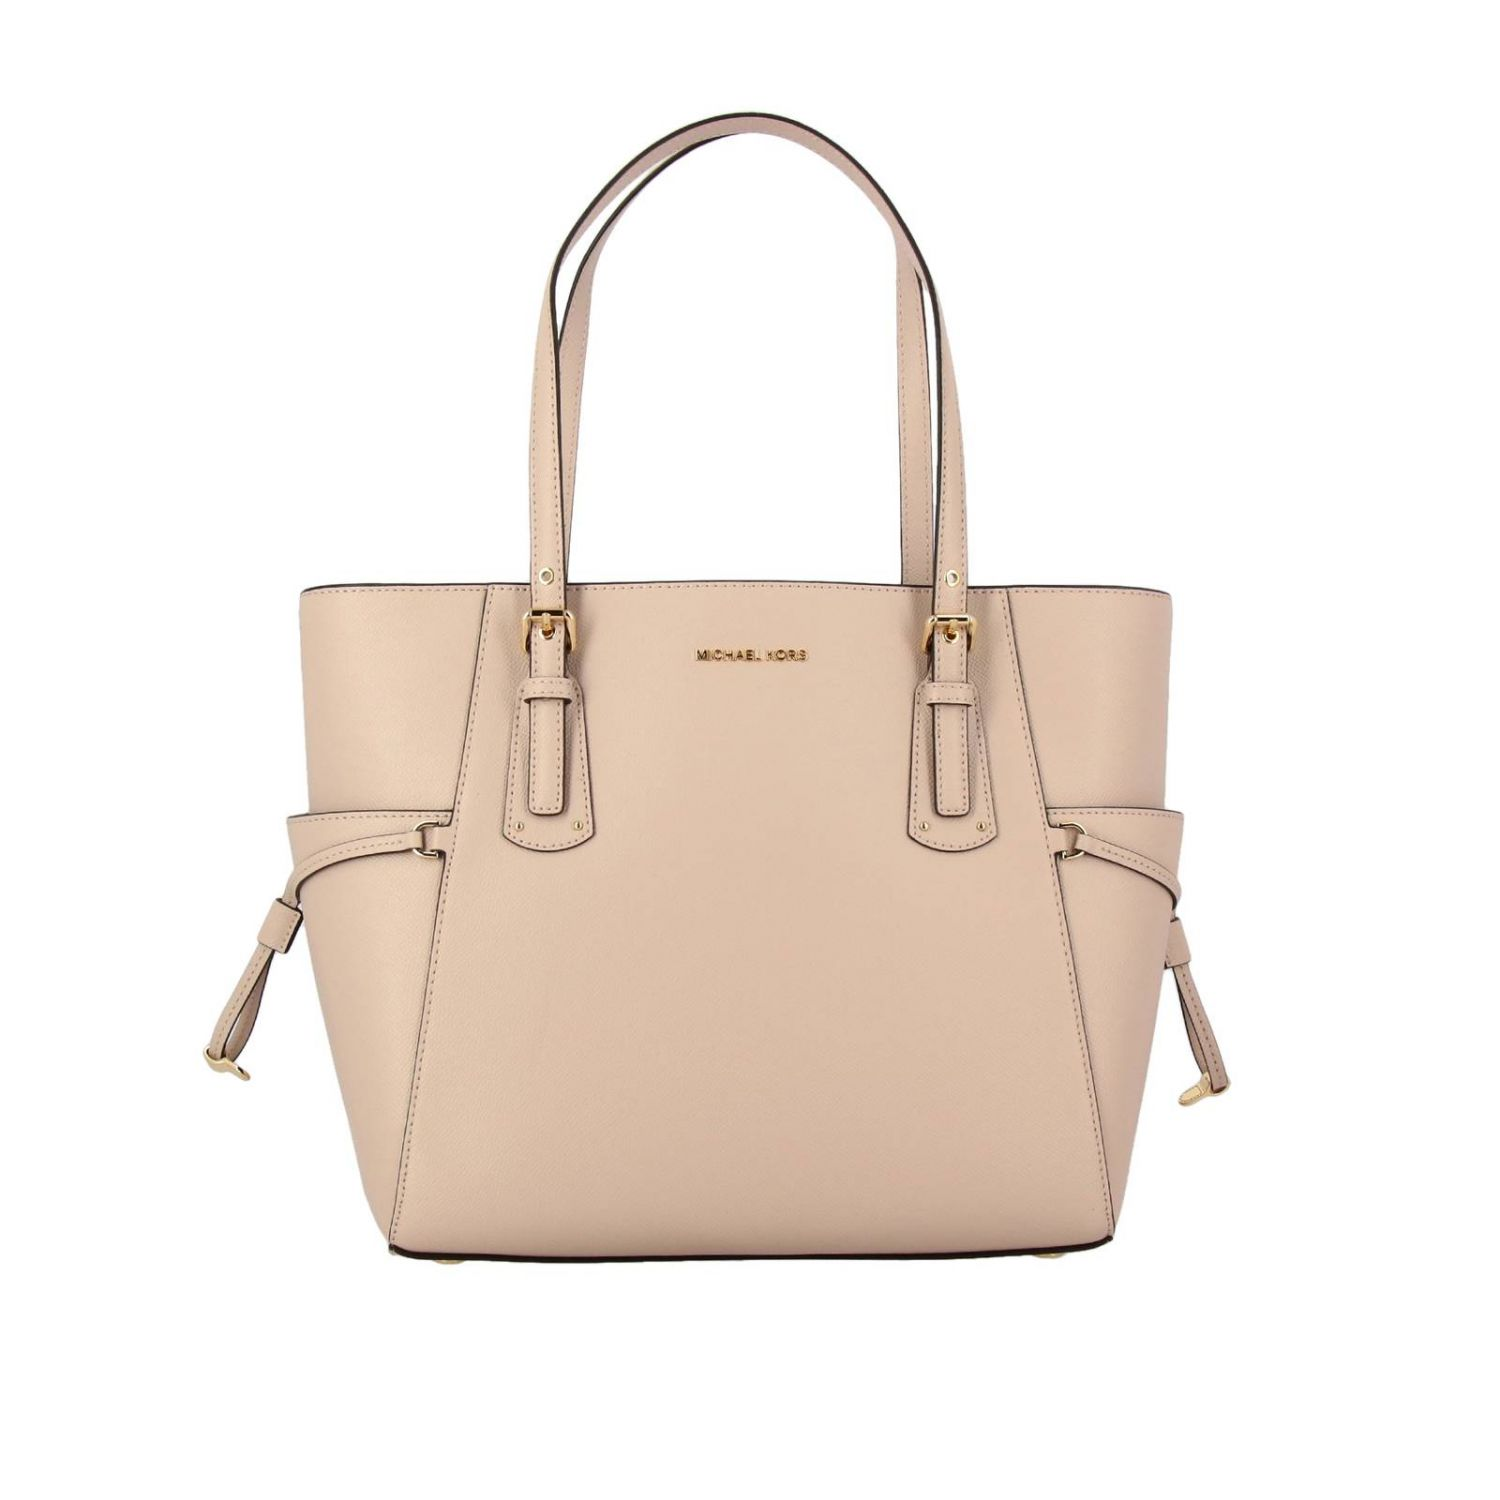 Michael Michael Kors Voyager east west tote 真皮手袋 粉末色 1